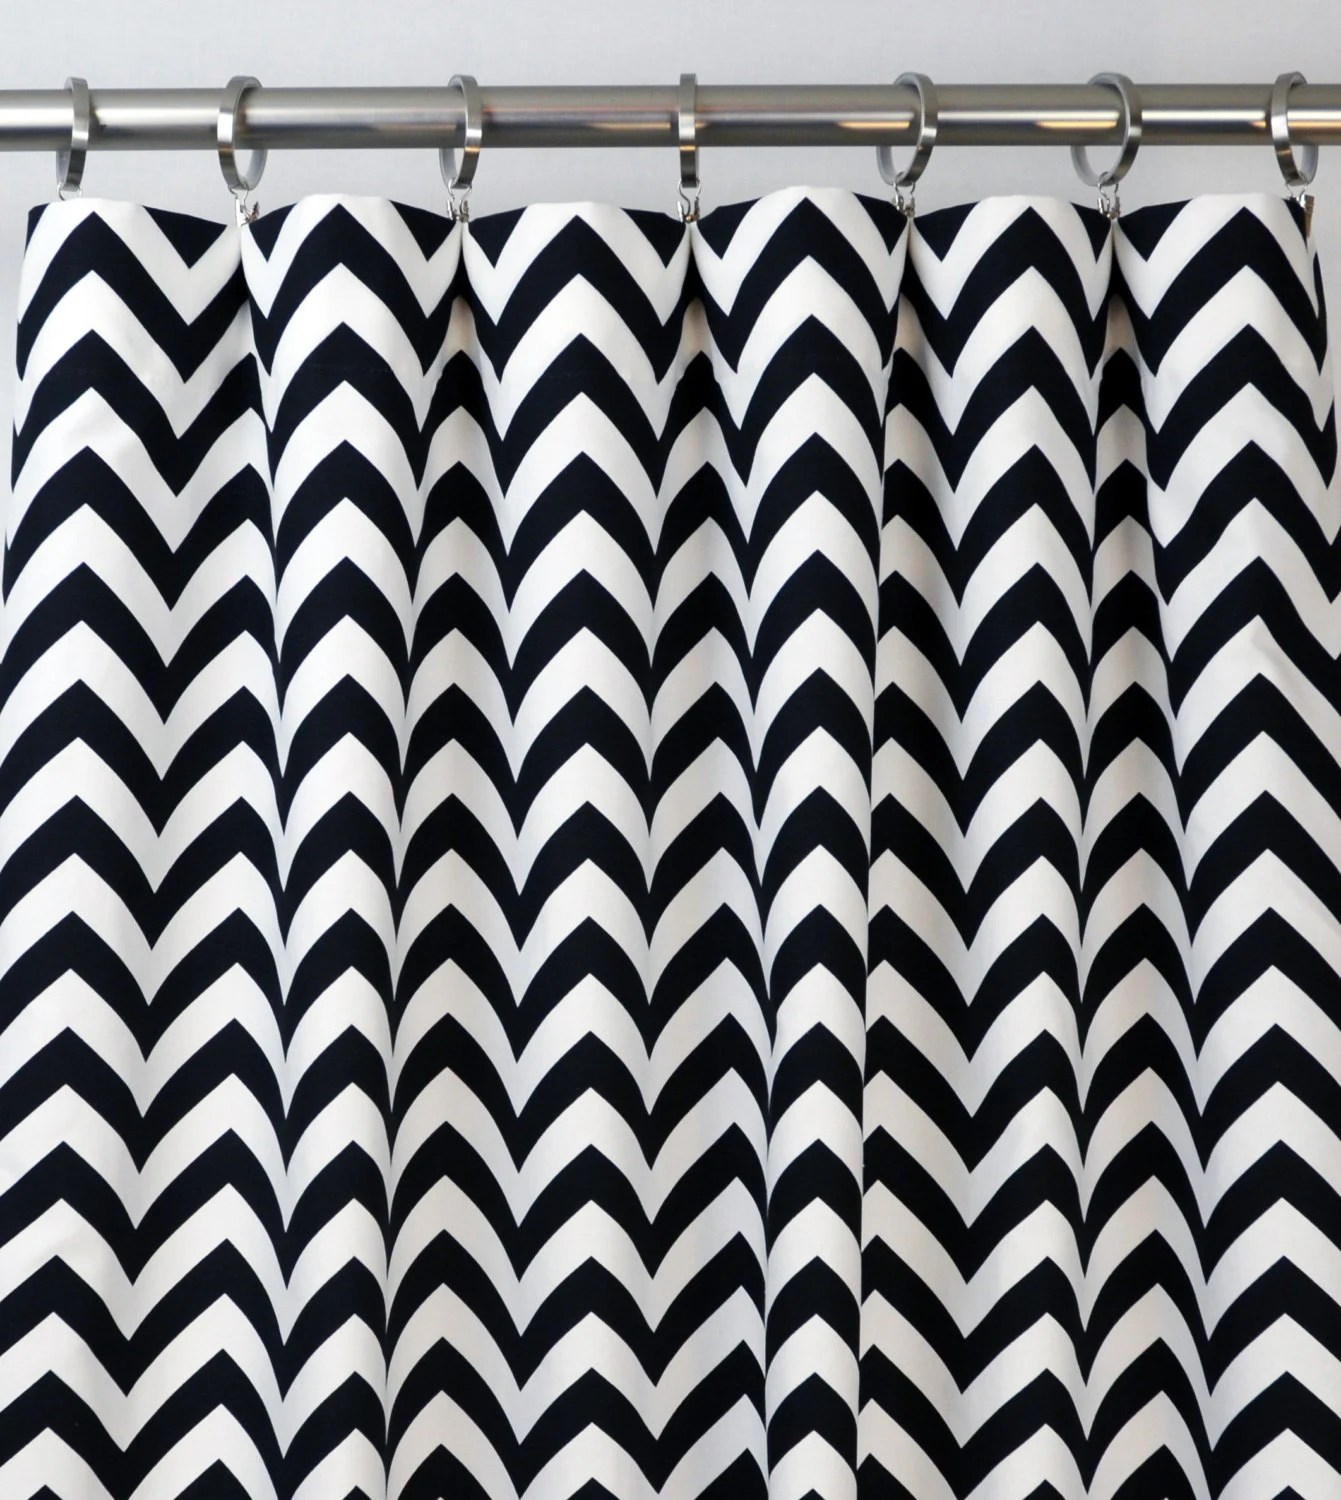 Black And White Chevron Blackout Curtains Black White Chevron Zig Zag Curtains Rod Pocket 84 96 108 Or 120 Long By 25 Or 50 Wide Optional Blackout Or Cotton Lining